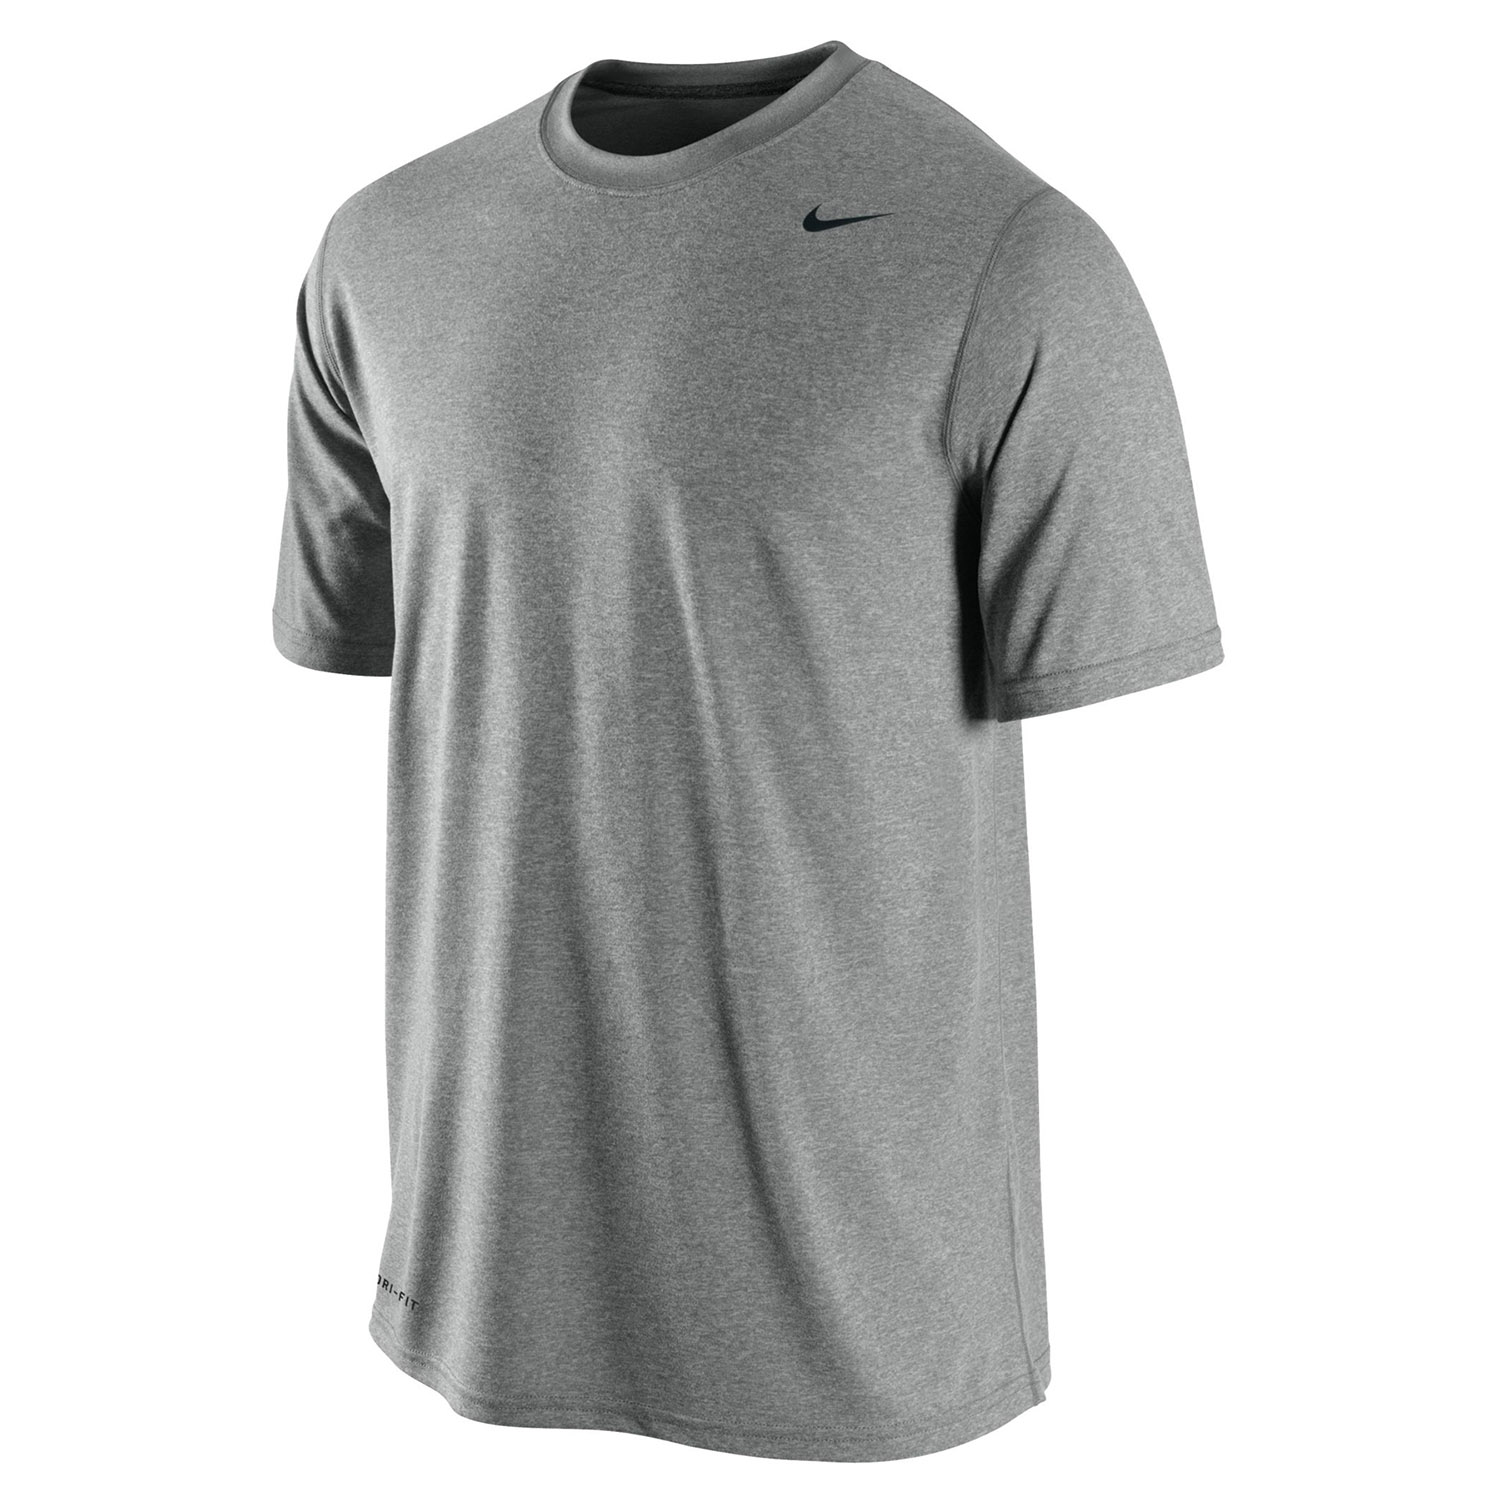 Nike legend dri fit polyester training shirt for Dri fit shirts on sale